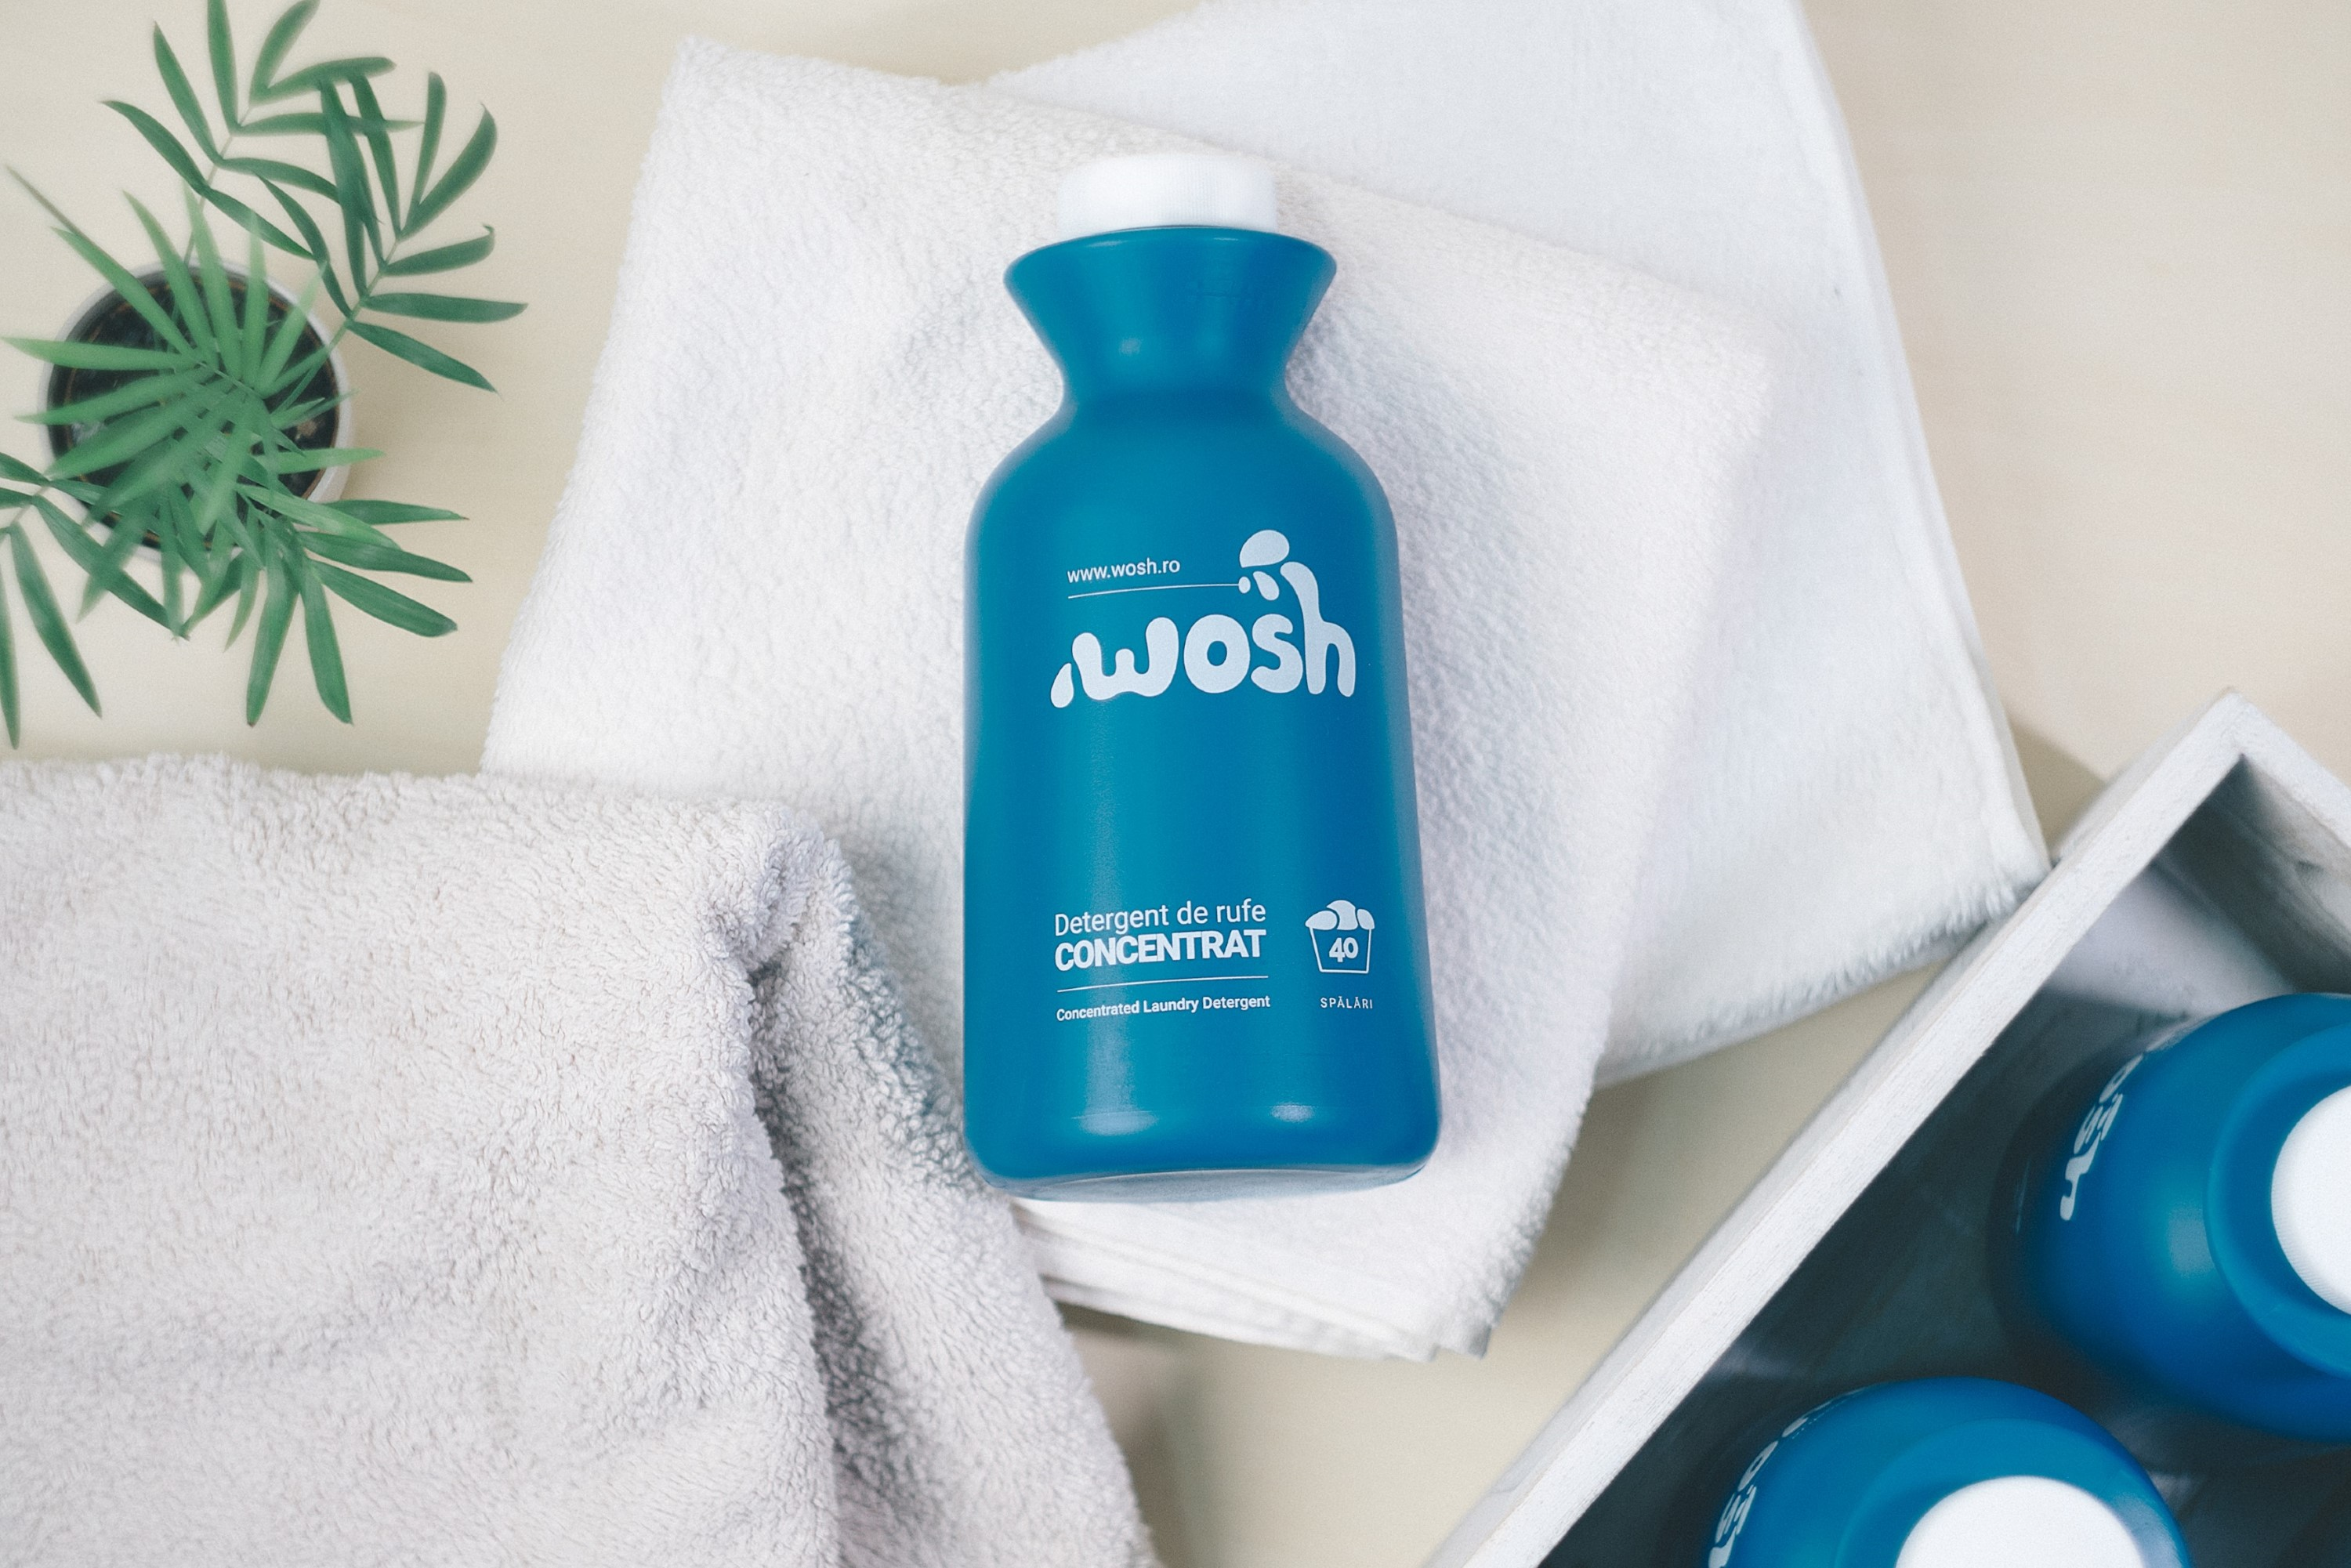 WOSH Concentrated Laundry Detergent